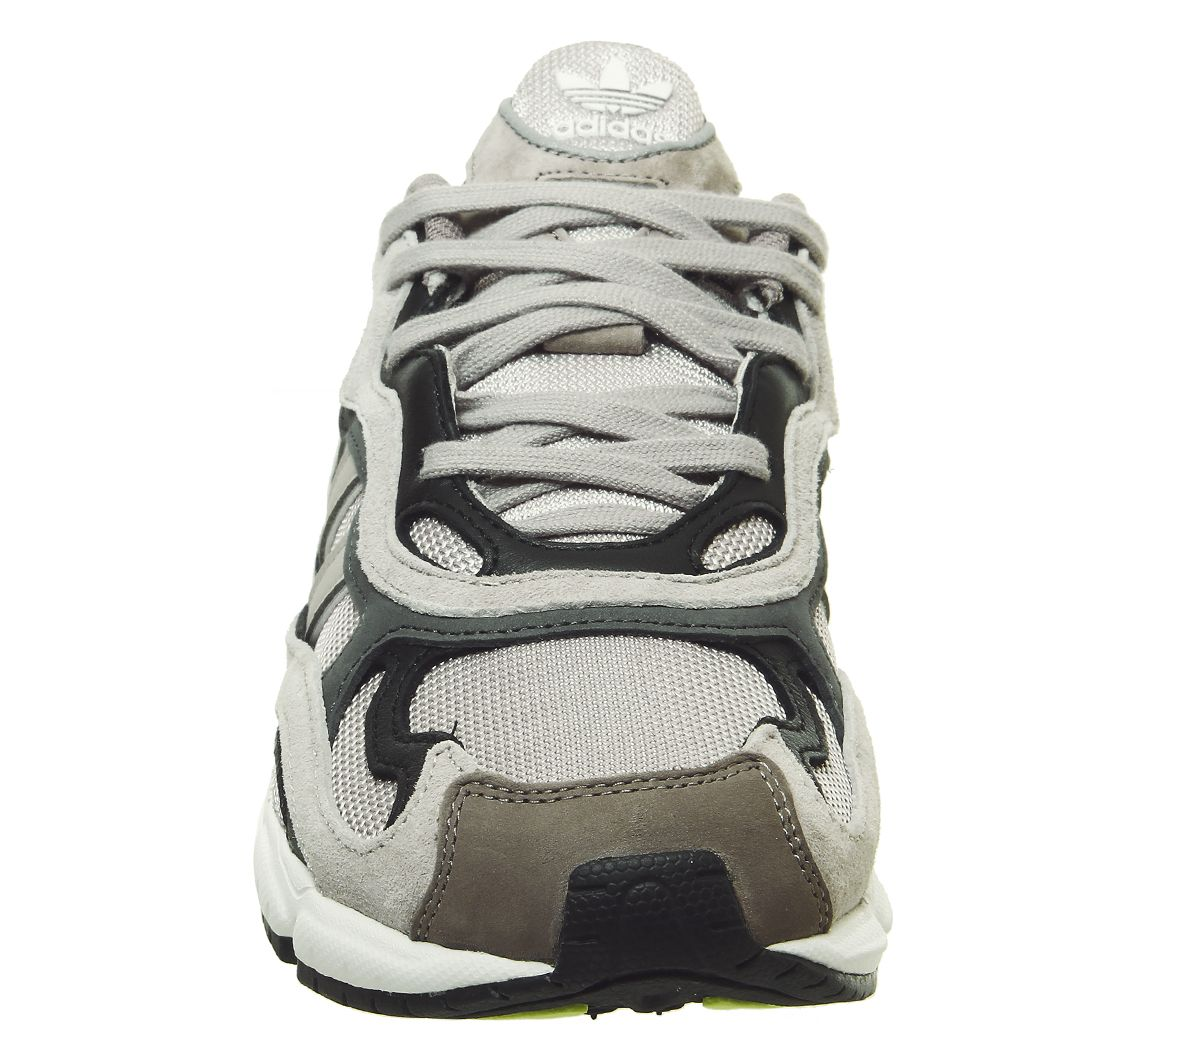 Adidas-Temper-Run-Trainers-Light-Brown-Grey-Core-Black-Trainers-Shoes thumbnail 3